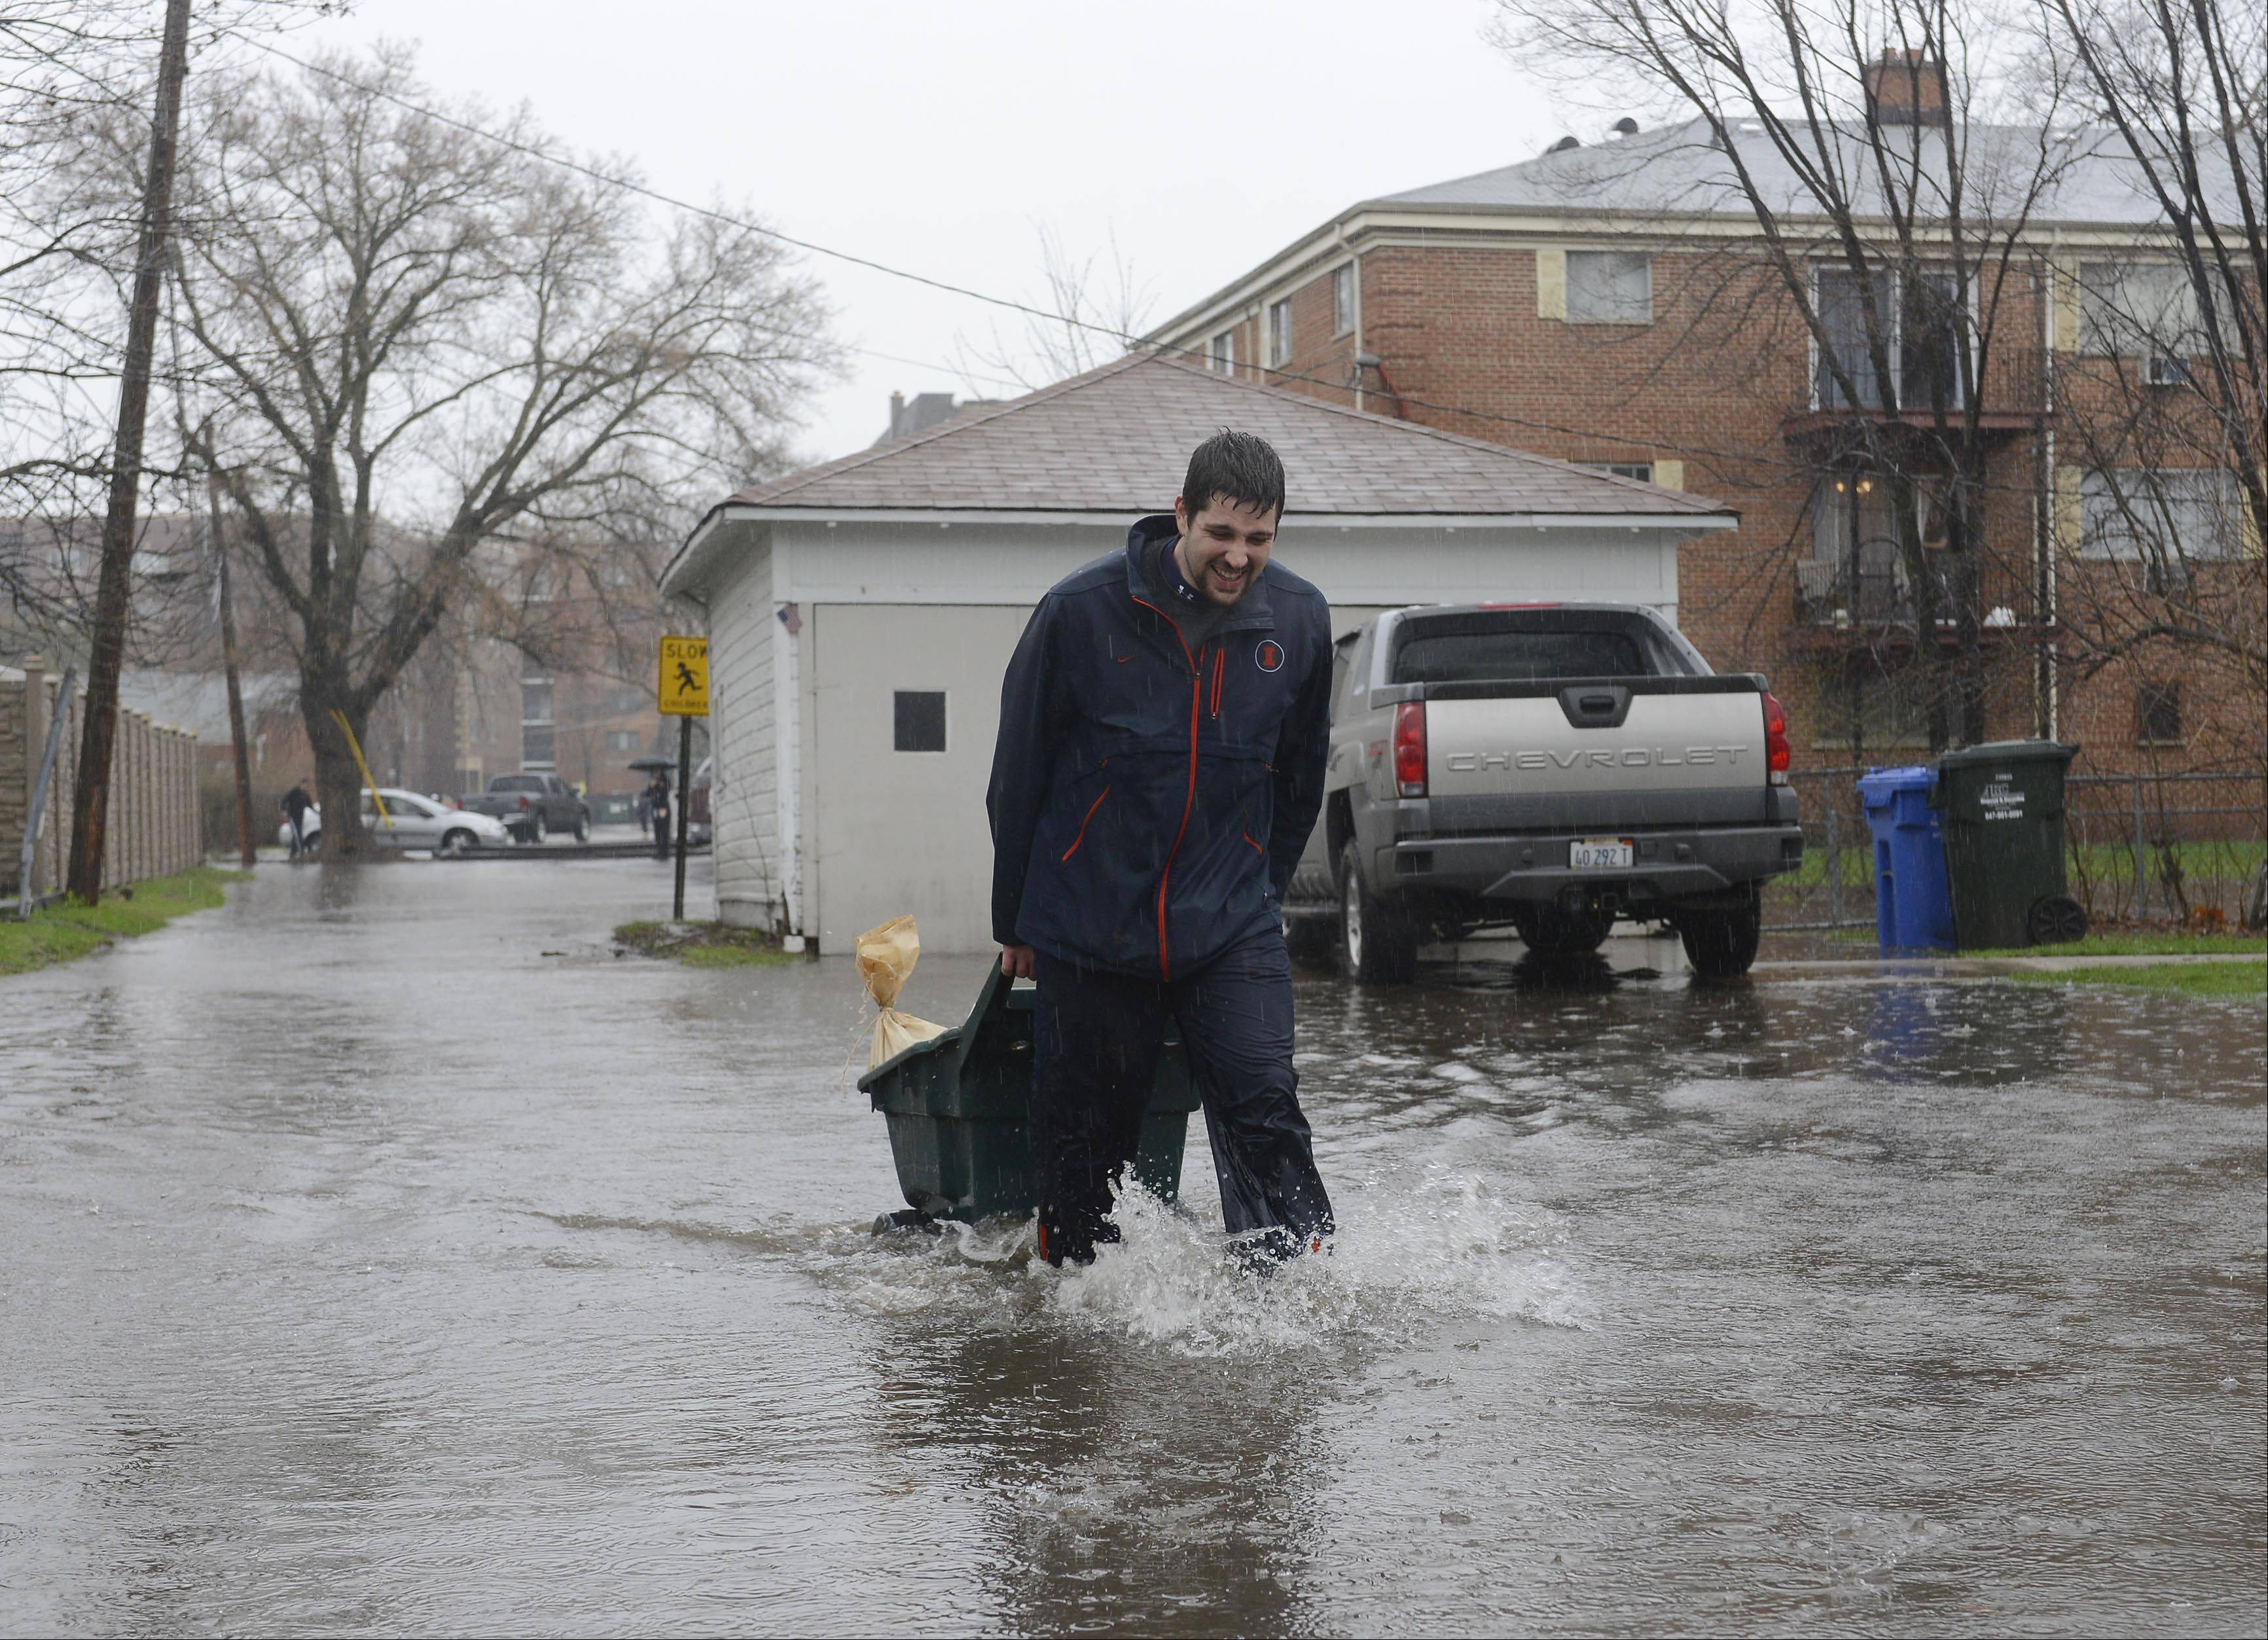 Dan Bachar of Des Plaines wheels a cart loaded with sandbags to his parents' house on Walnut Avenue as floodwaters rise in Des Plaines Thursday.